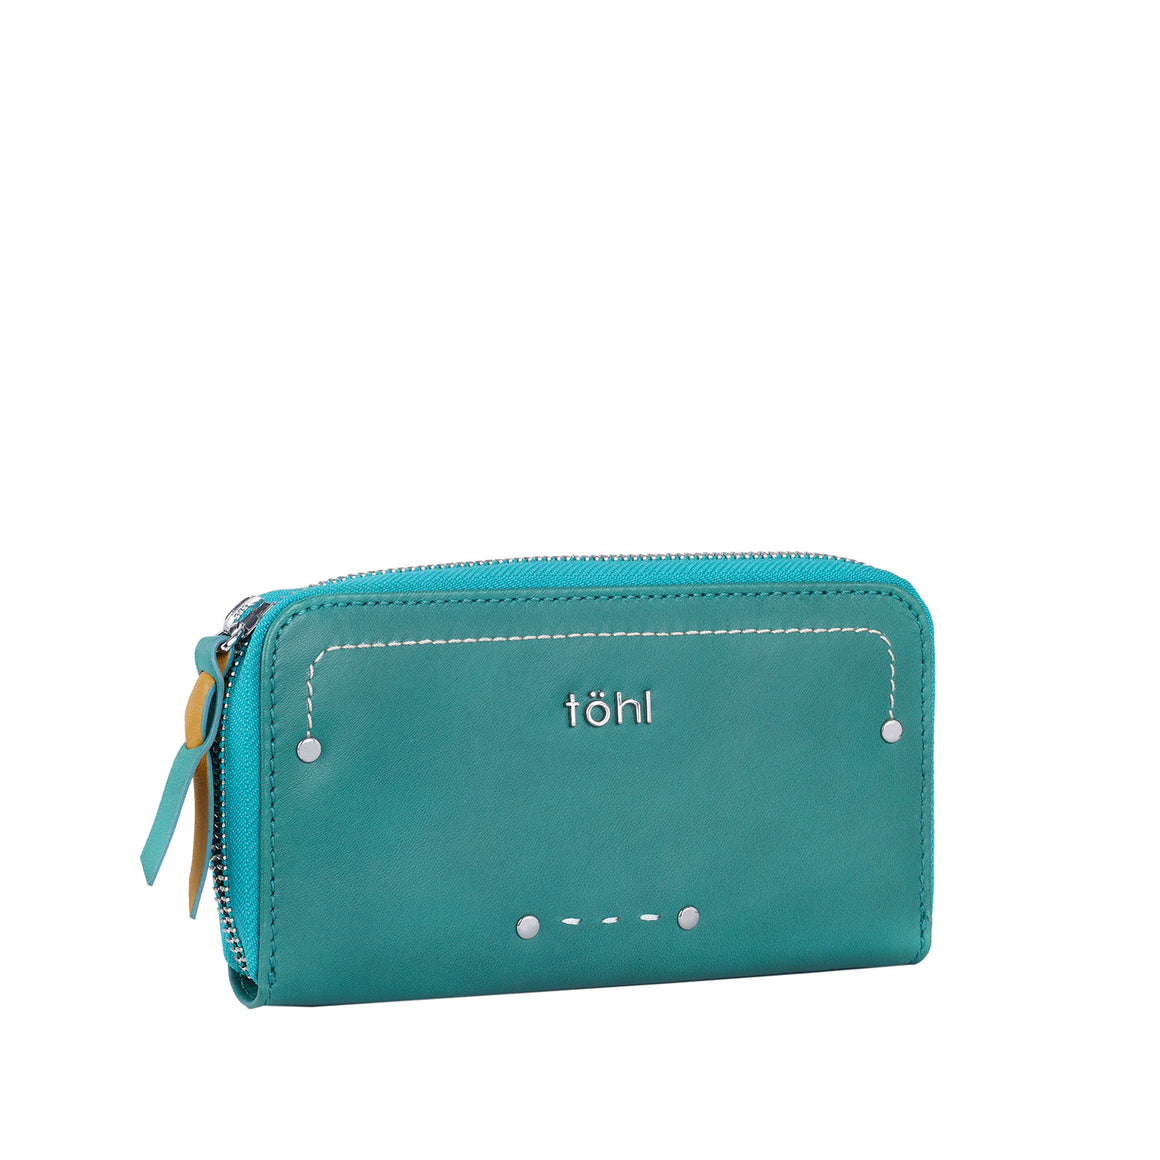 WT 0001 - TOHL YARA WOMEN'S ZIP WALLET - TURKIS